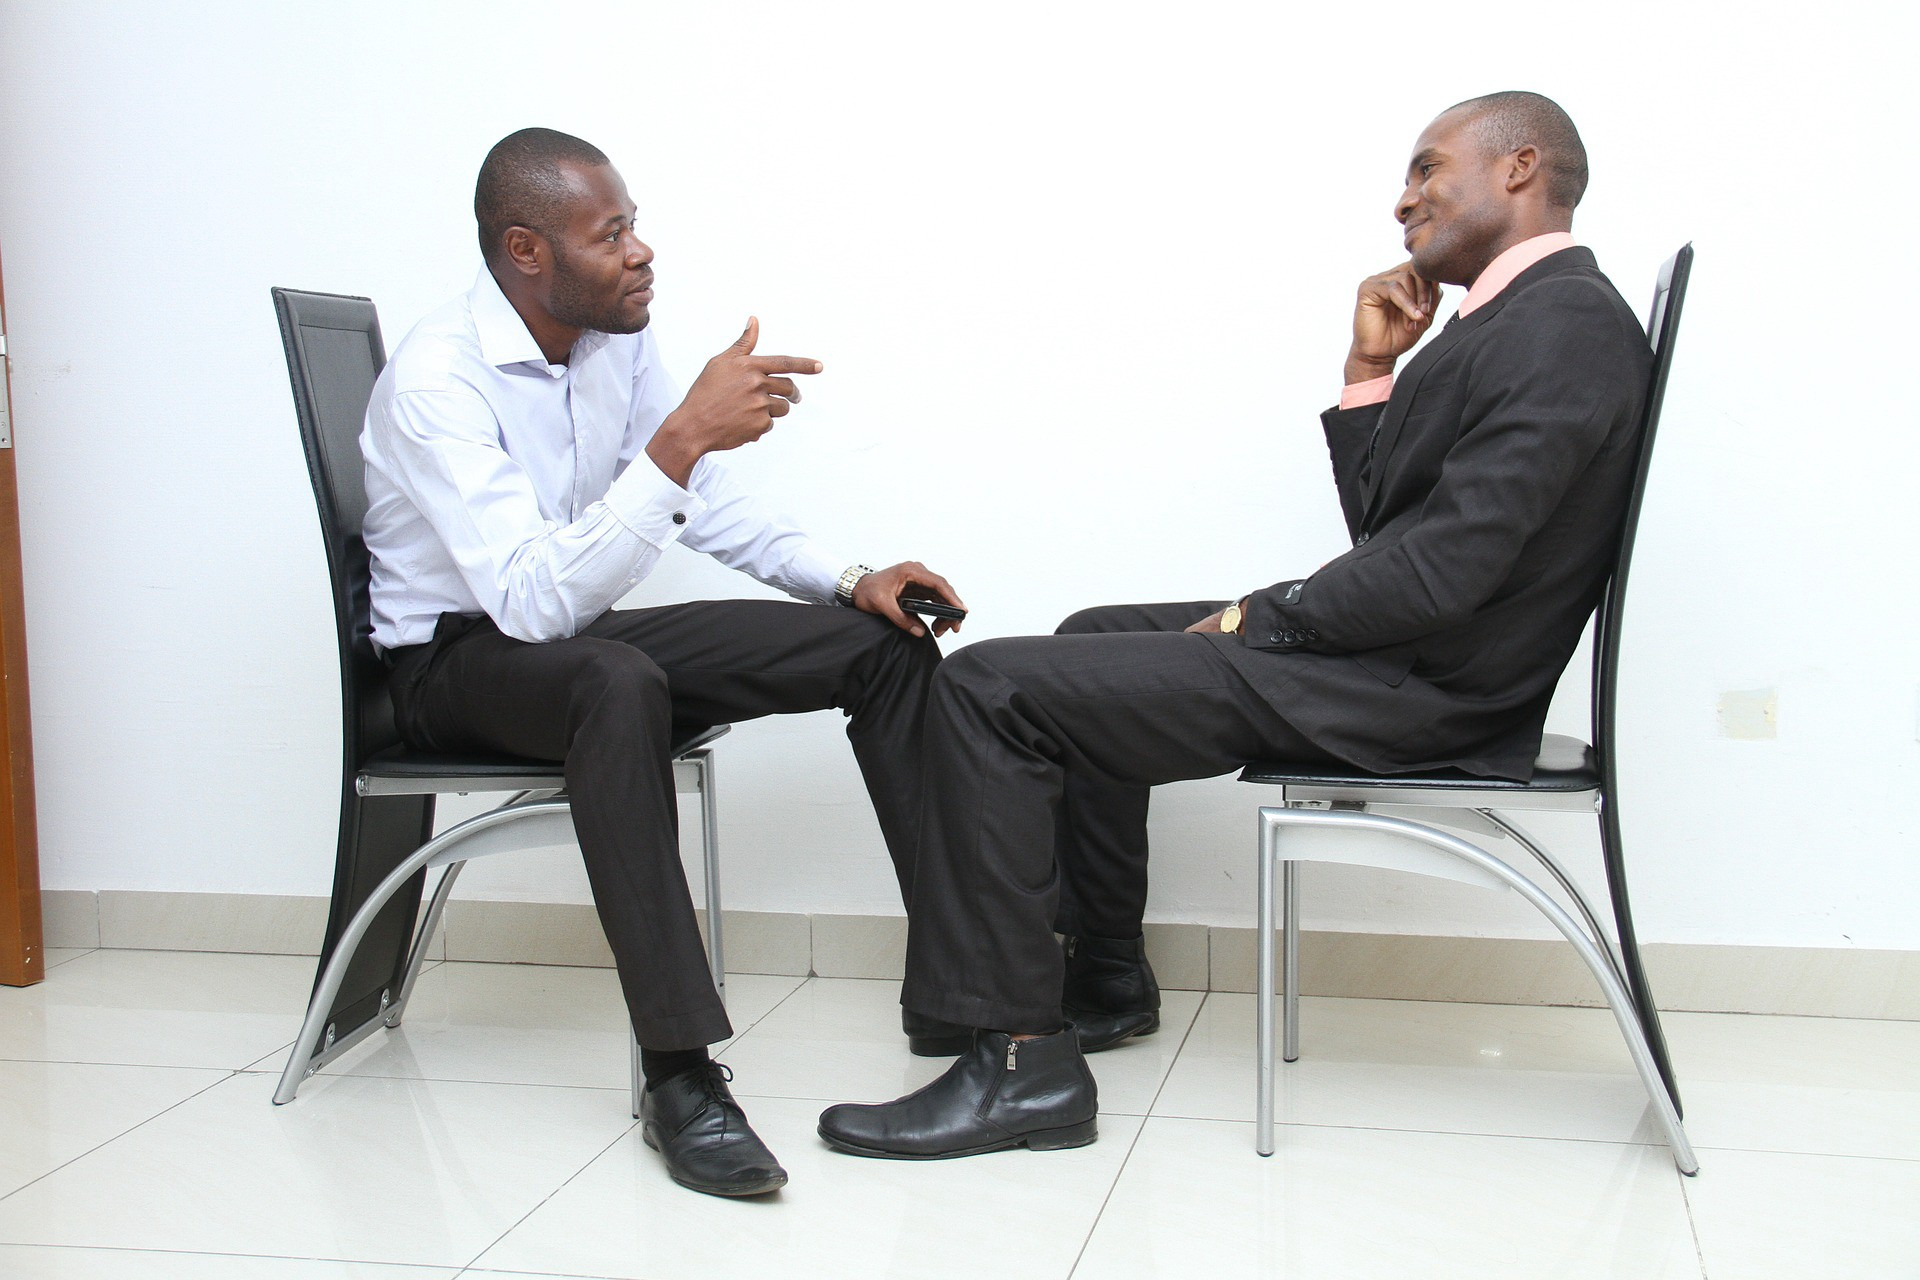 4 unconventional job interview questions to ask for better screening